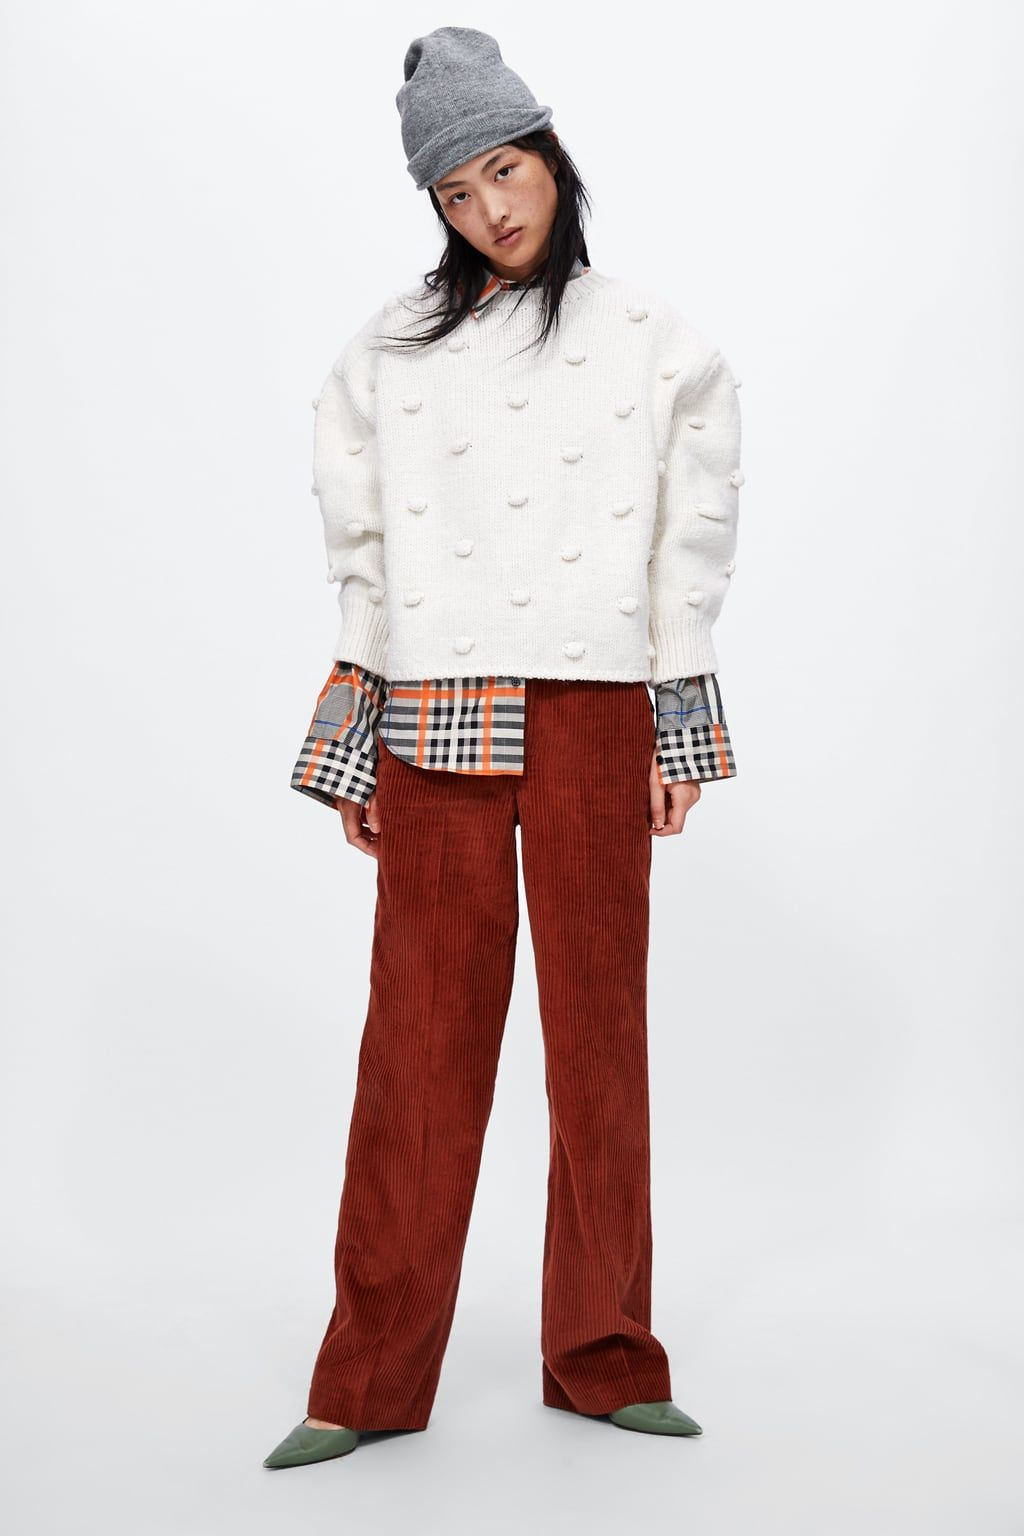 Zara Has Almost 500 Jumpers, But These 17 Are the Best images